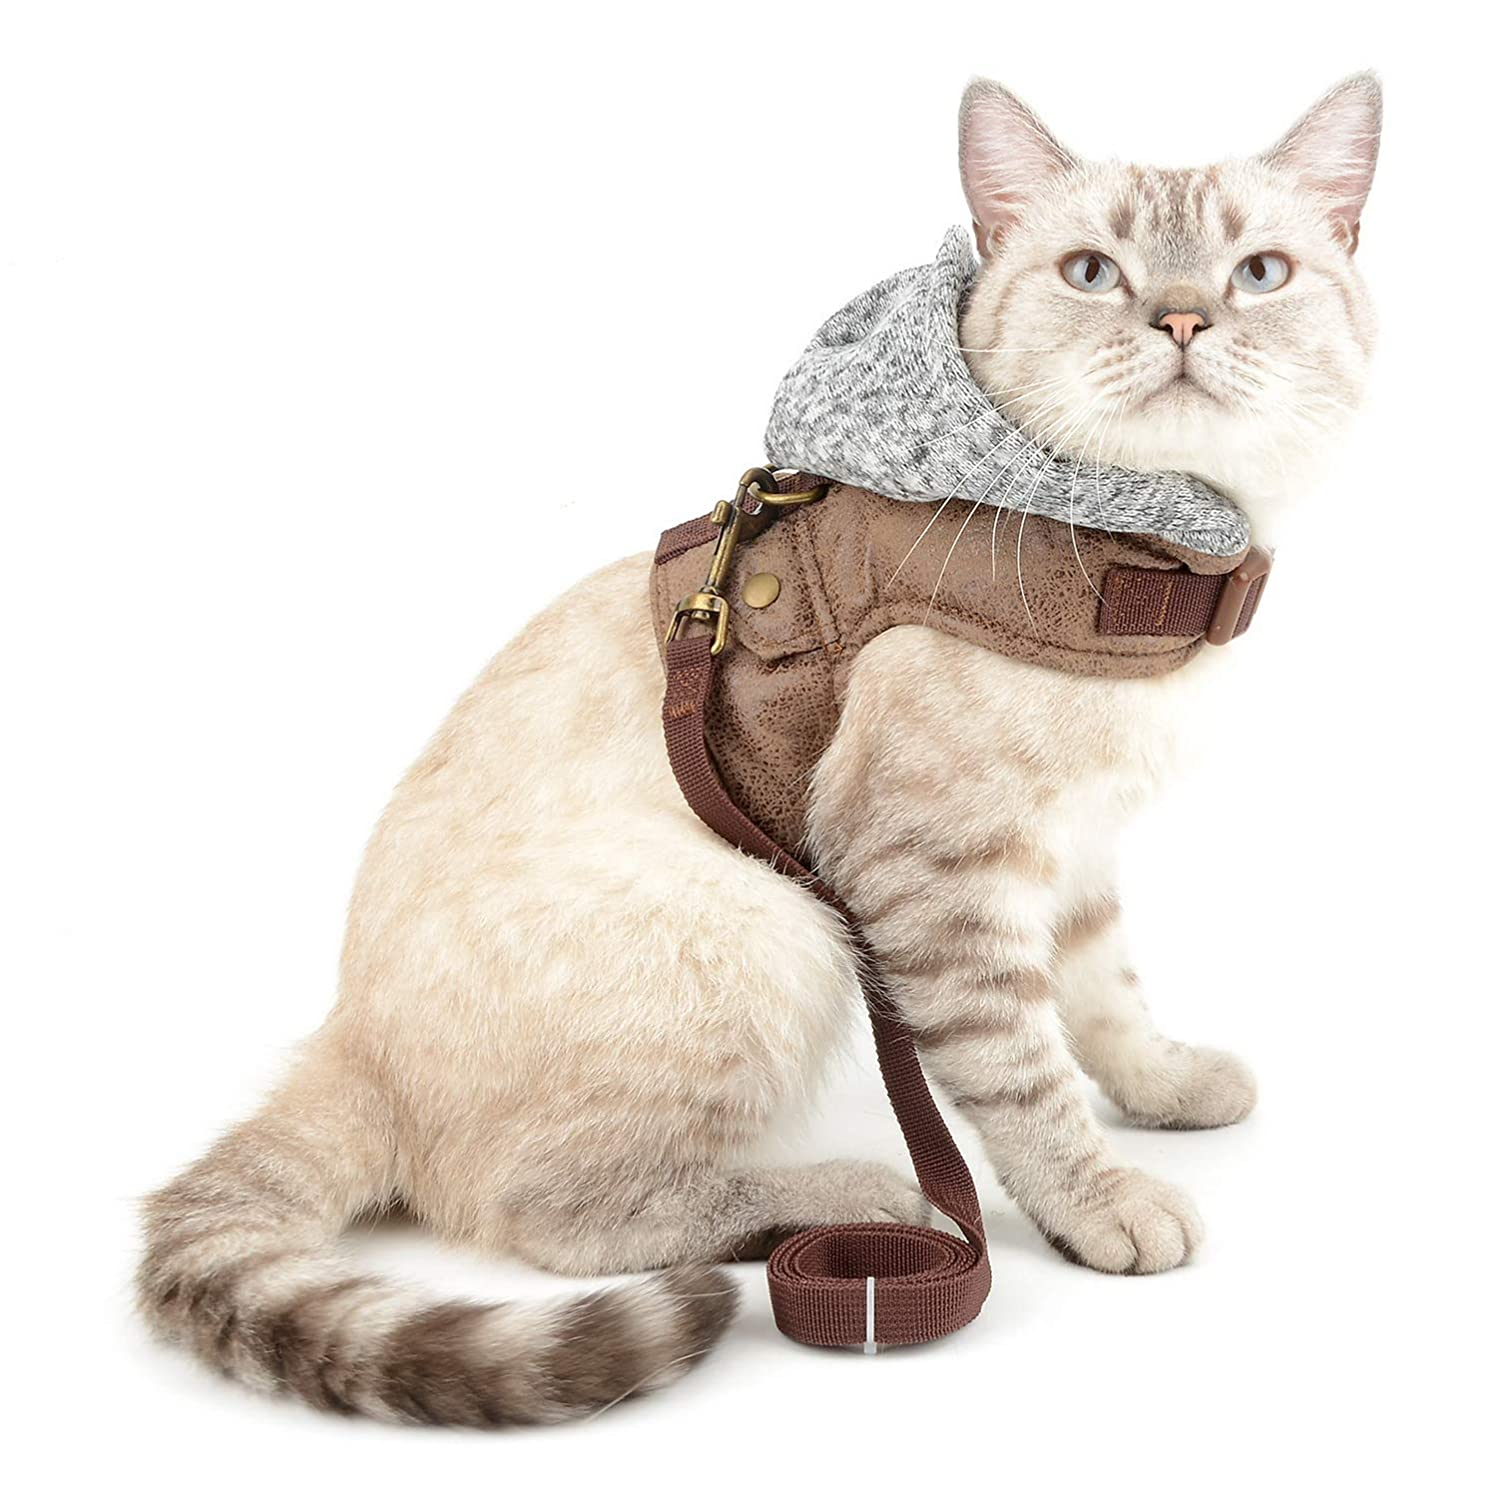 SMALLLEE/_LUCKY/_STORE Bone Print Striped Cat and Small Dog Harness Hoodie with Leash Adjustable No Pull Escape Proof Soft Padded Walking Jacket Grey Hood Small Puppies Kitten Harness Vest